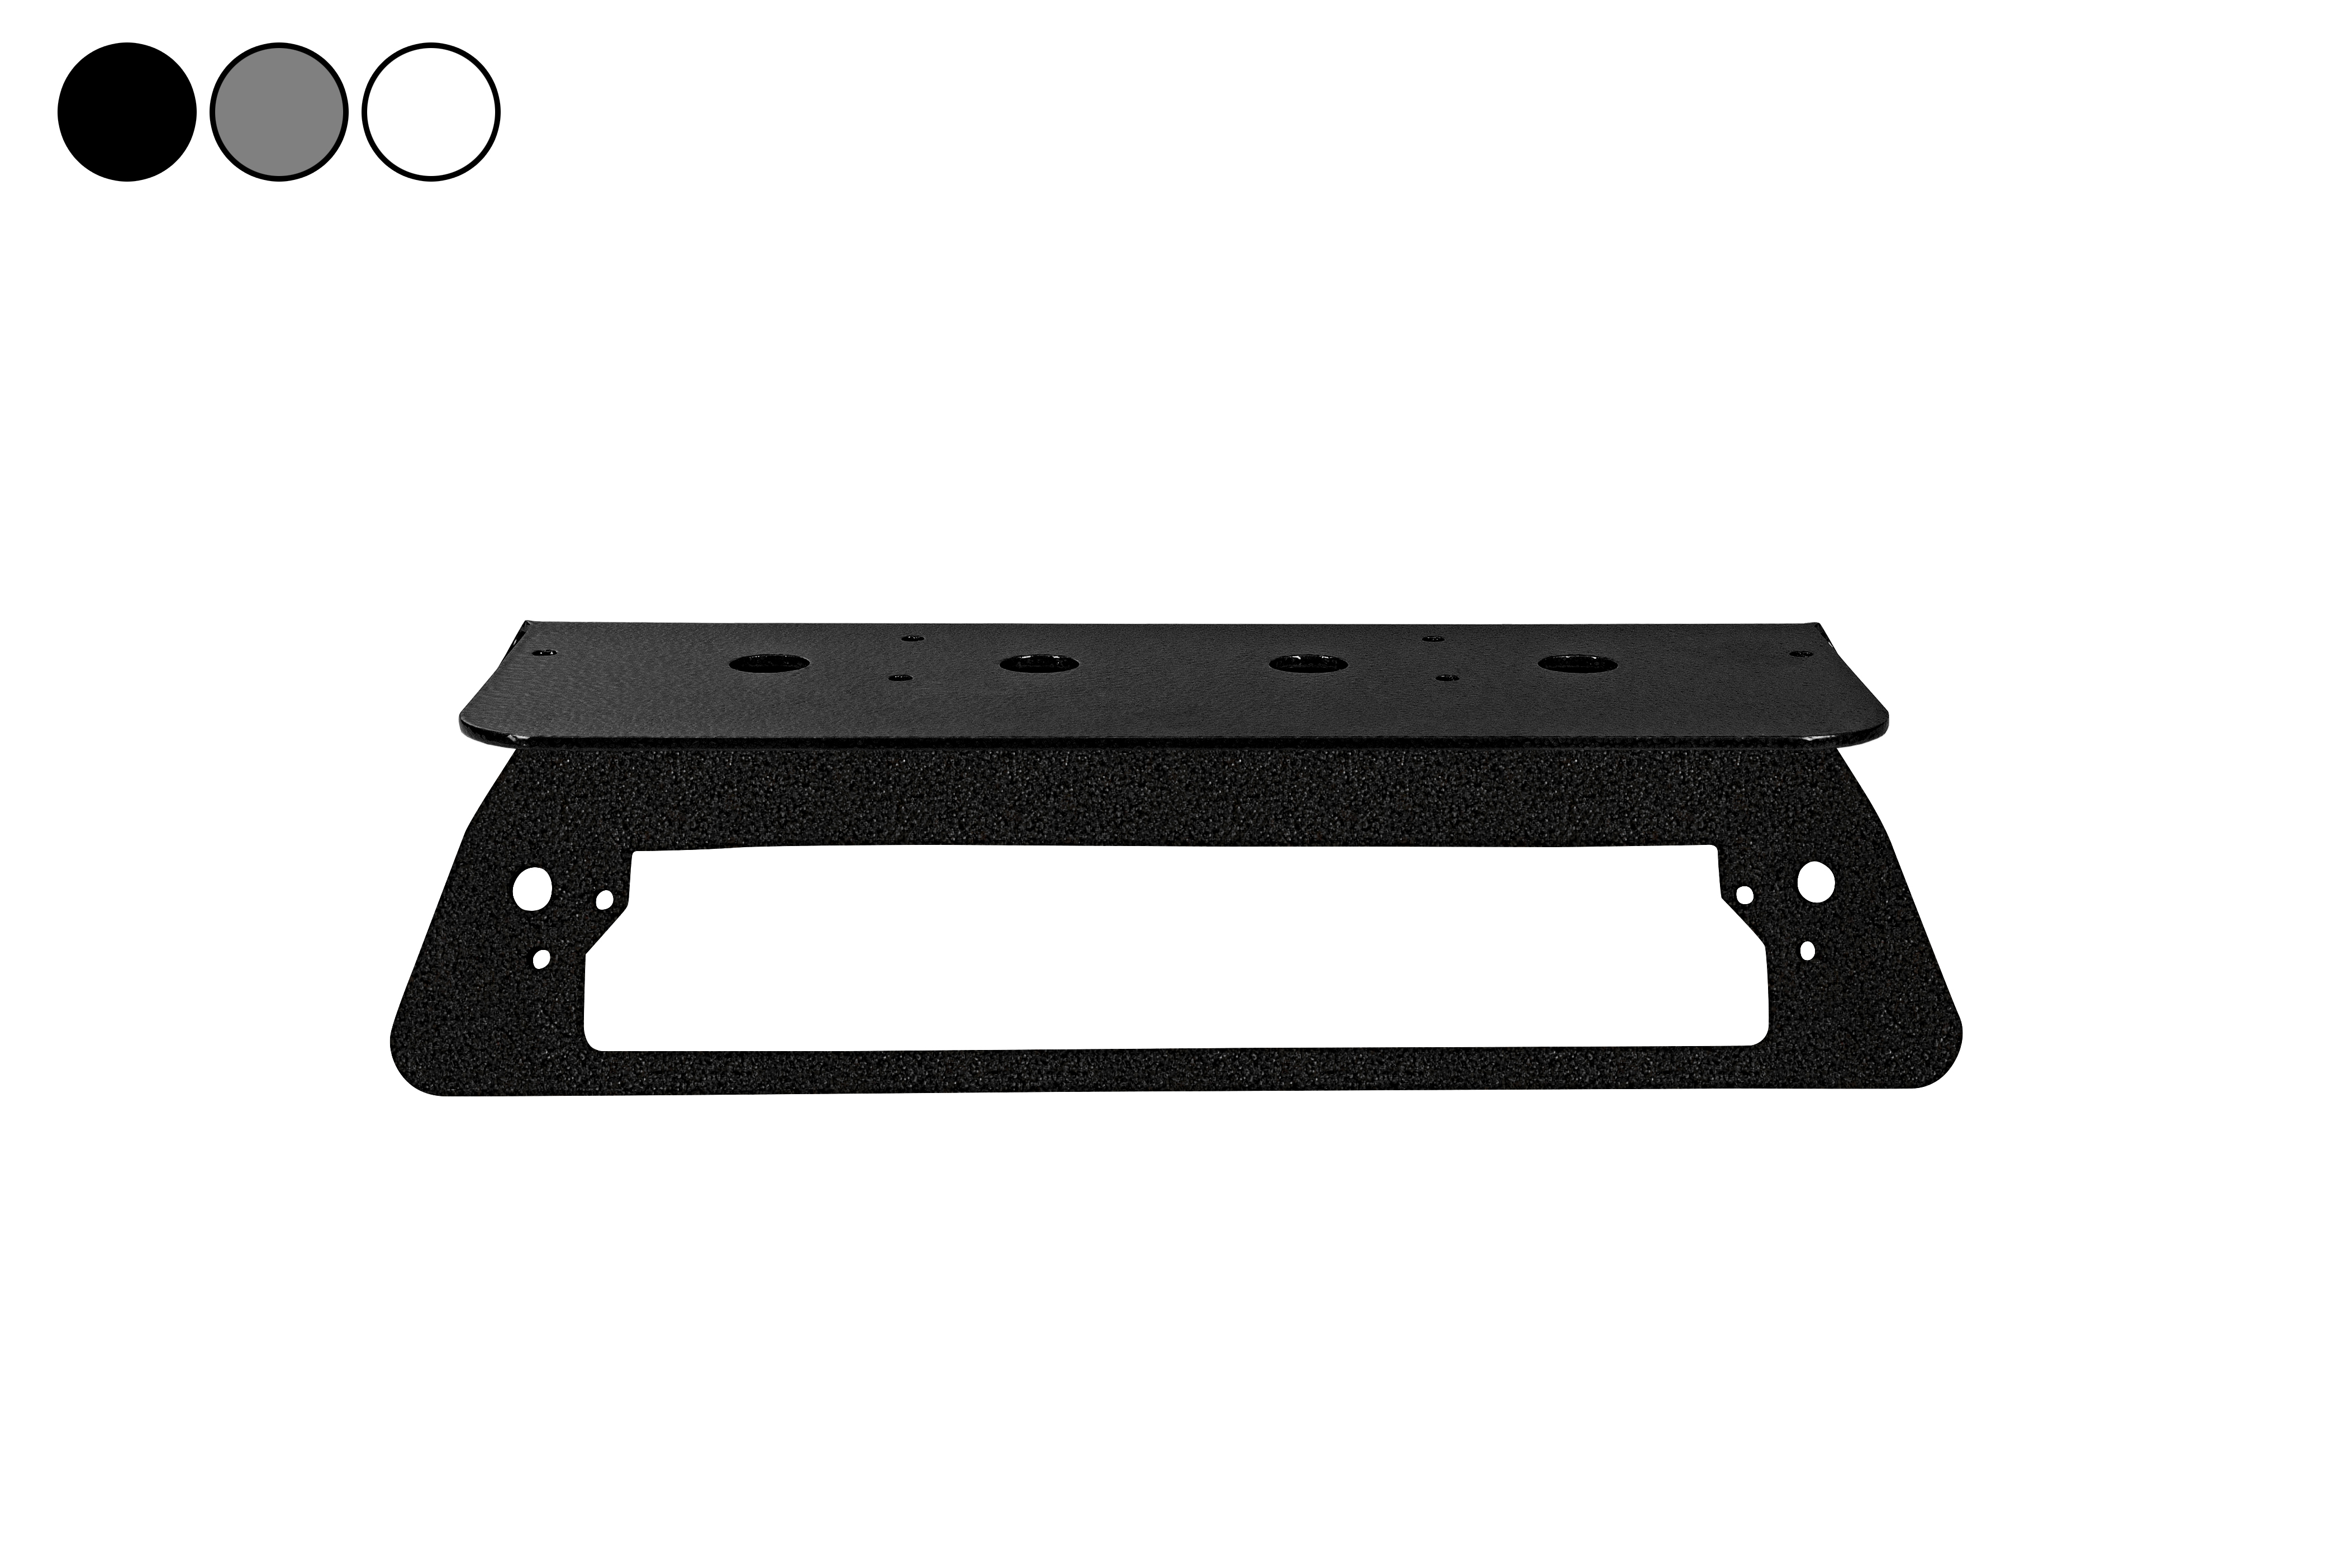 Antenna Permanent Mounting Plate for 2014 Chevrolet Silverado 1500 Truck